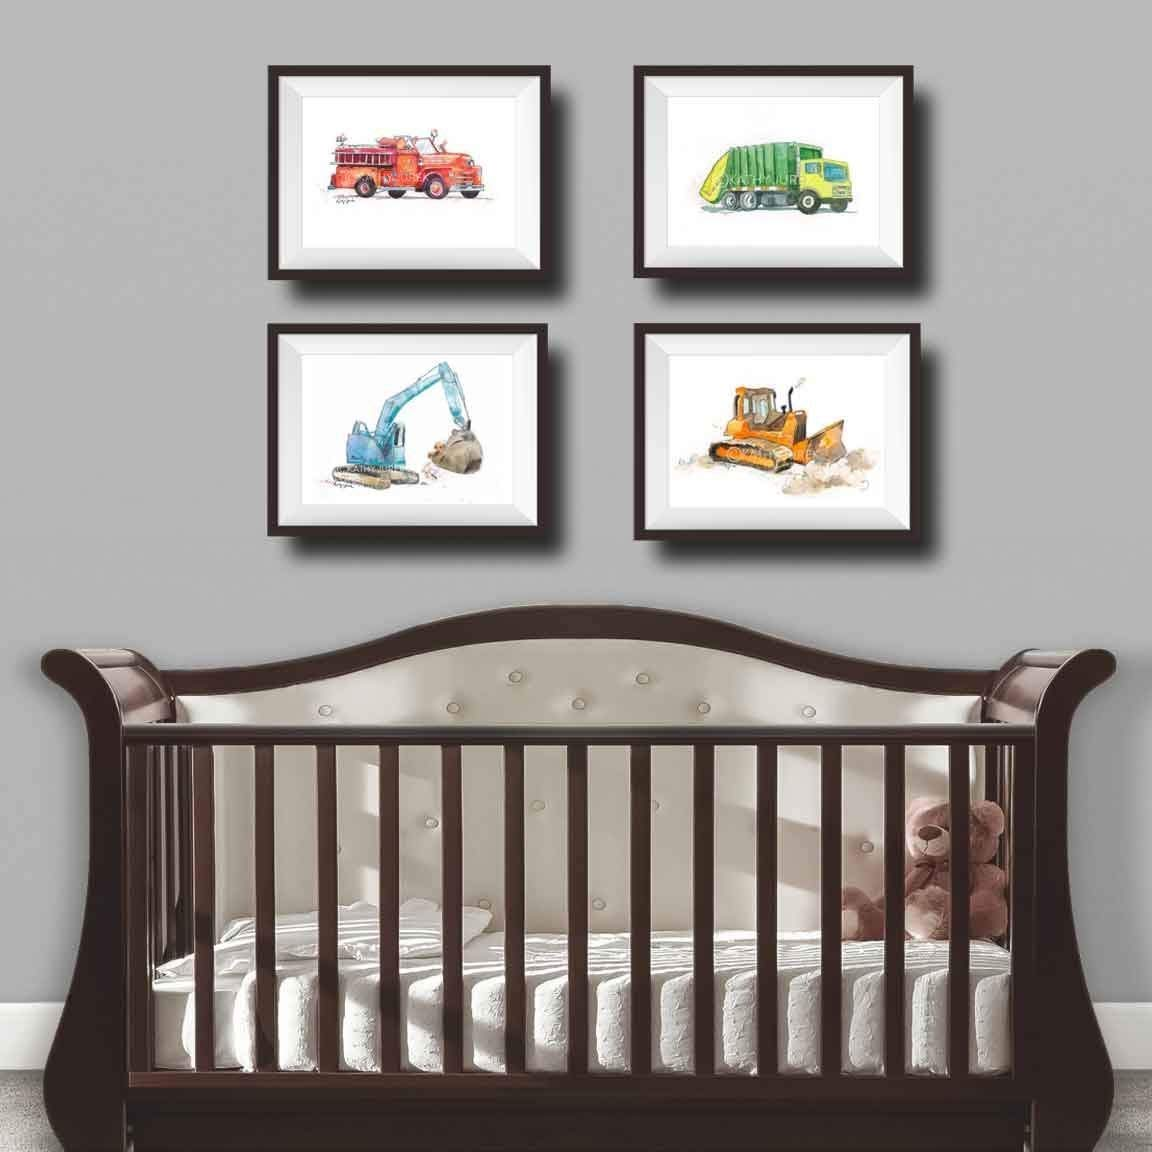 Nursery Wall Decor 8.5 x 11 Inch Gallery Quality Fine Art Gicl/ée Print Green Garbage Truck Wall Art Print for Kids Room